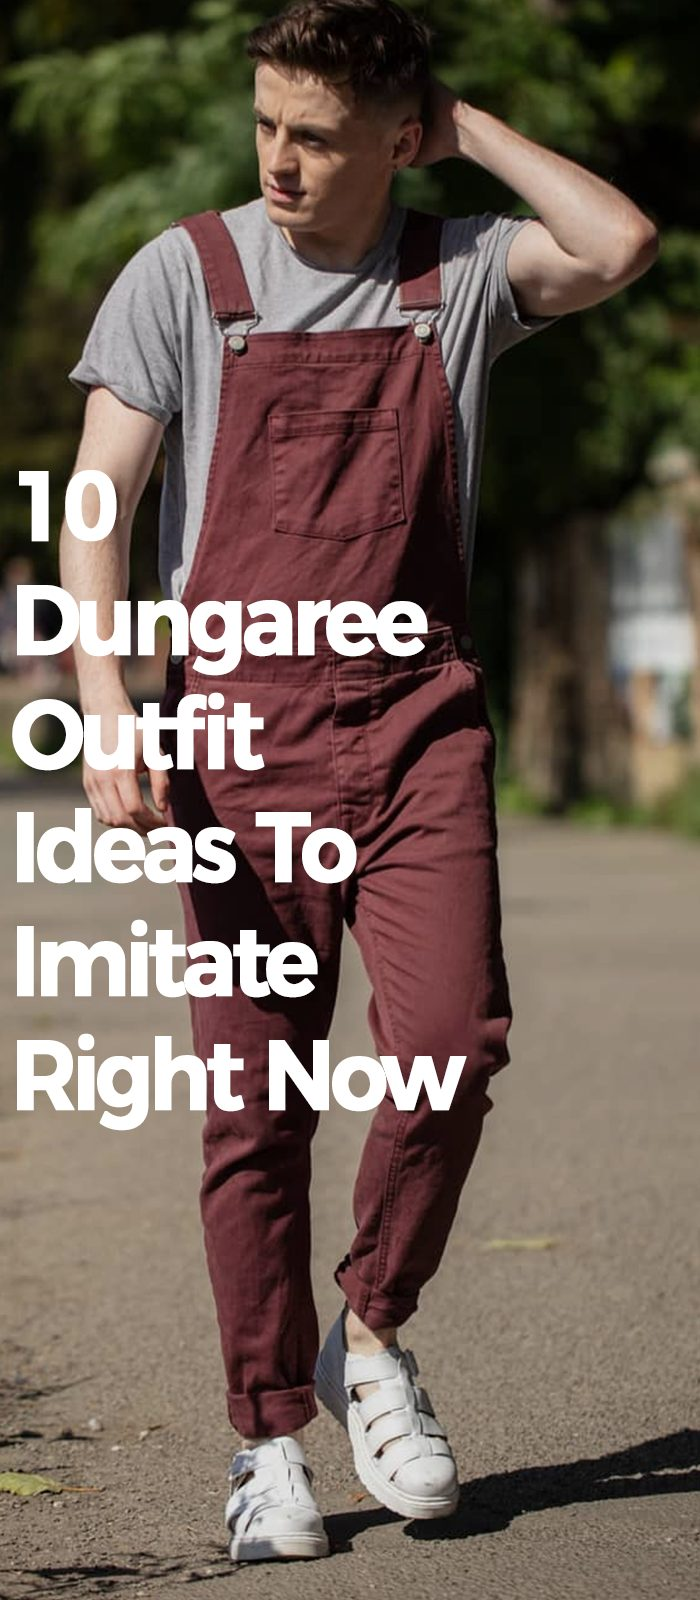 10 Dungaree Outfit Ideas To Imitate Right Now